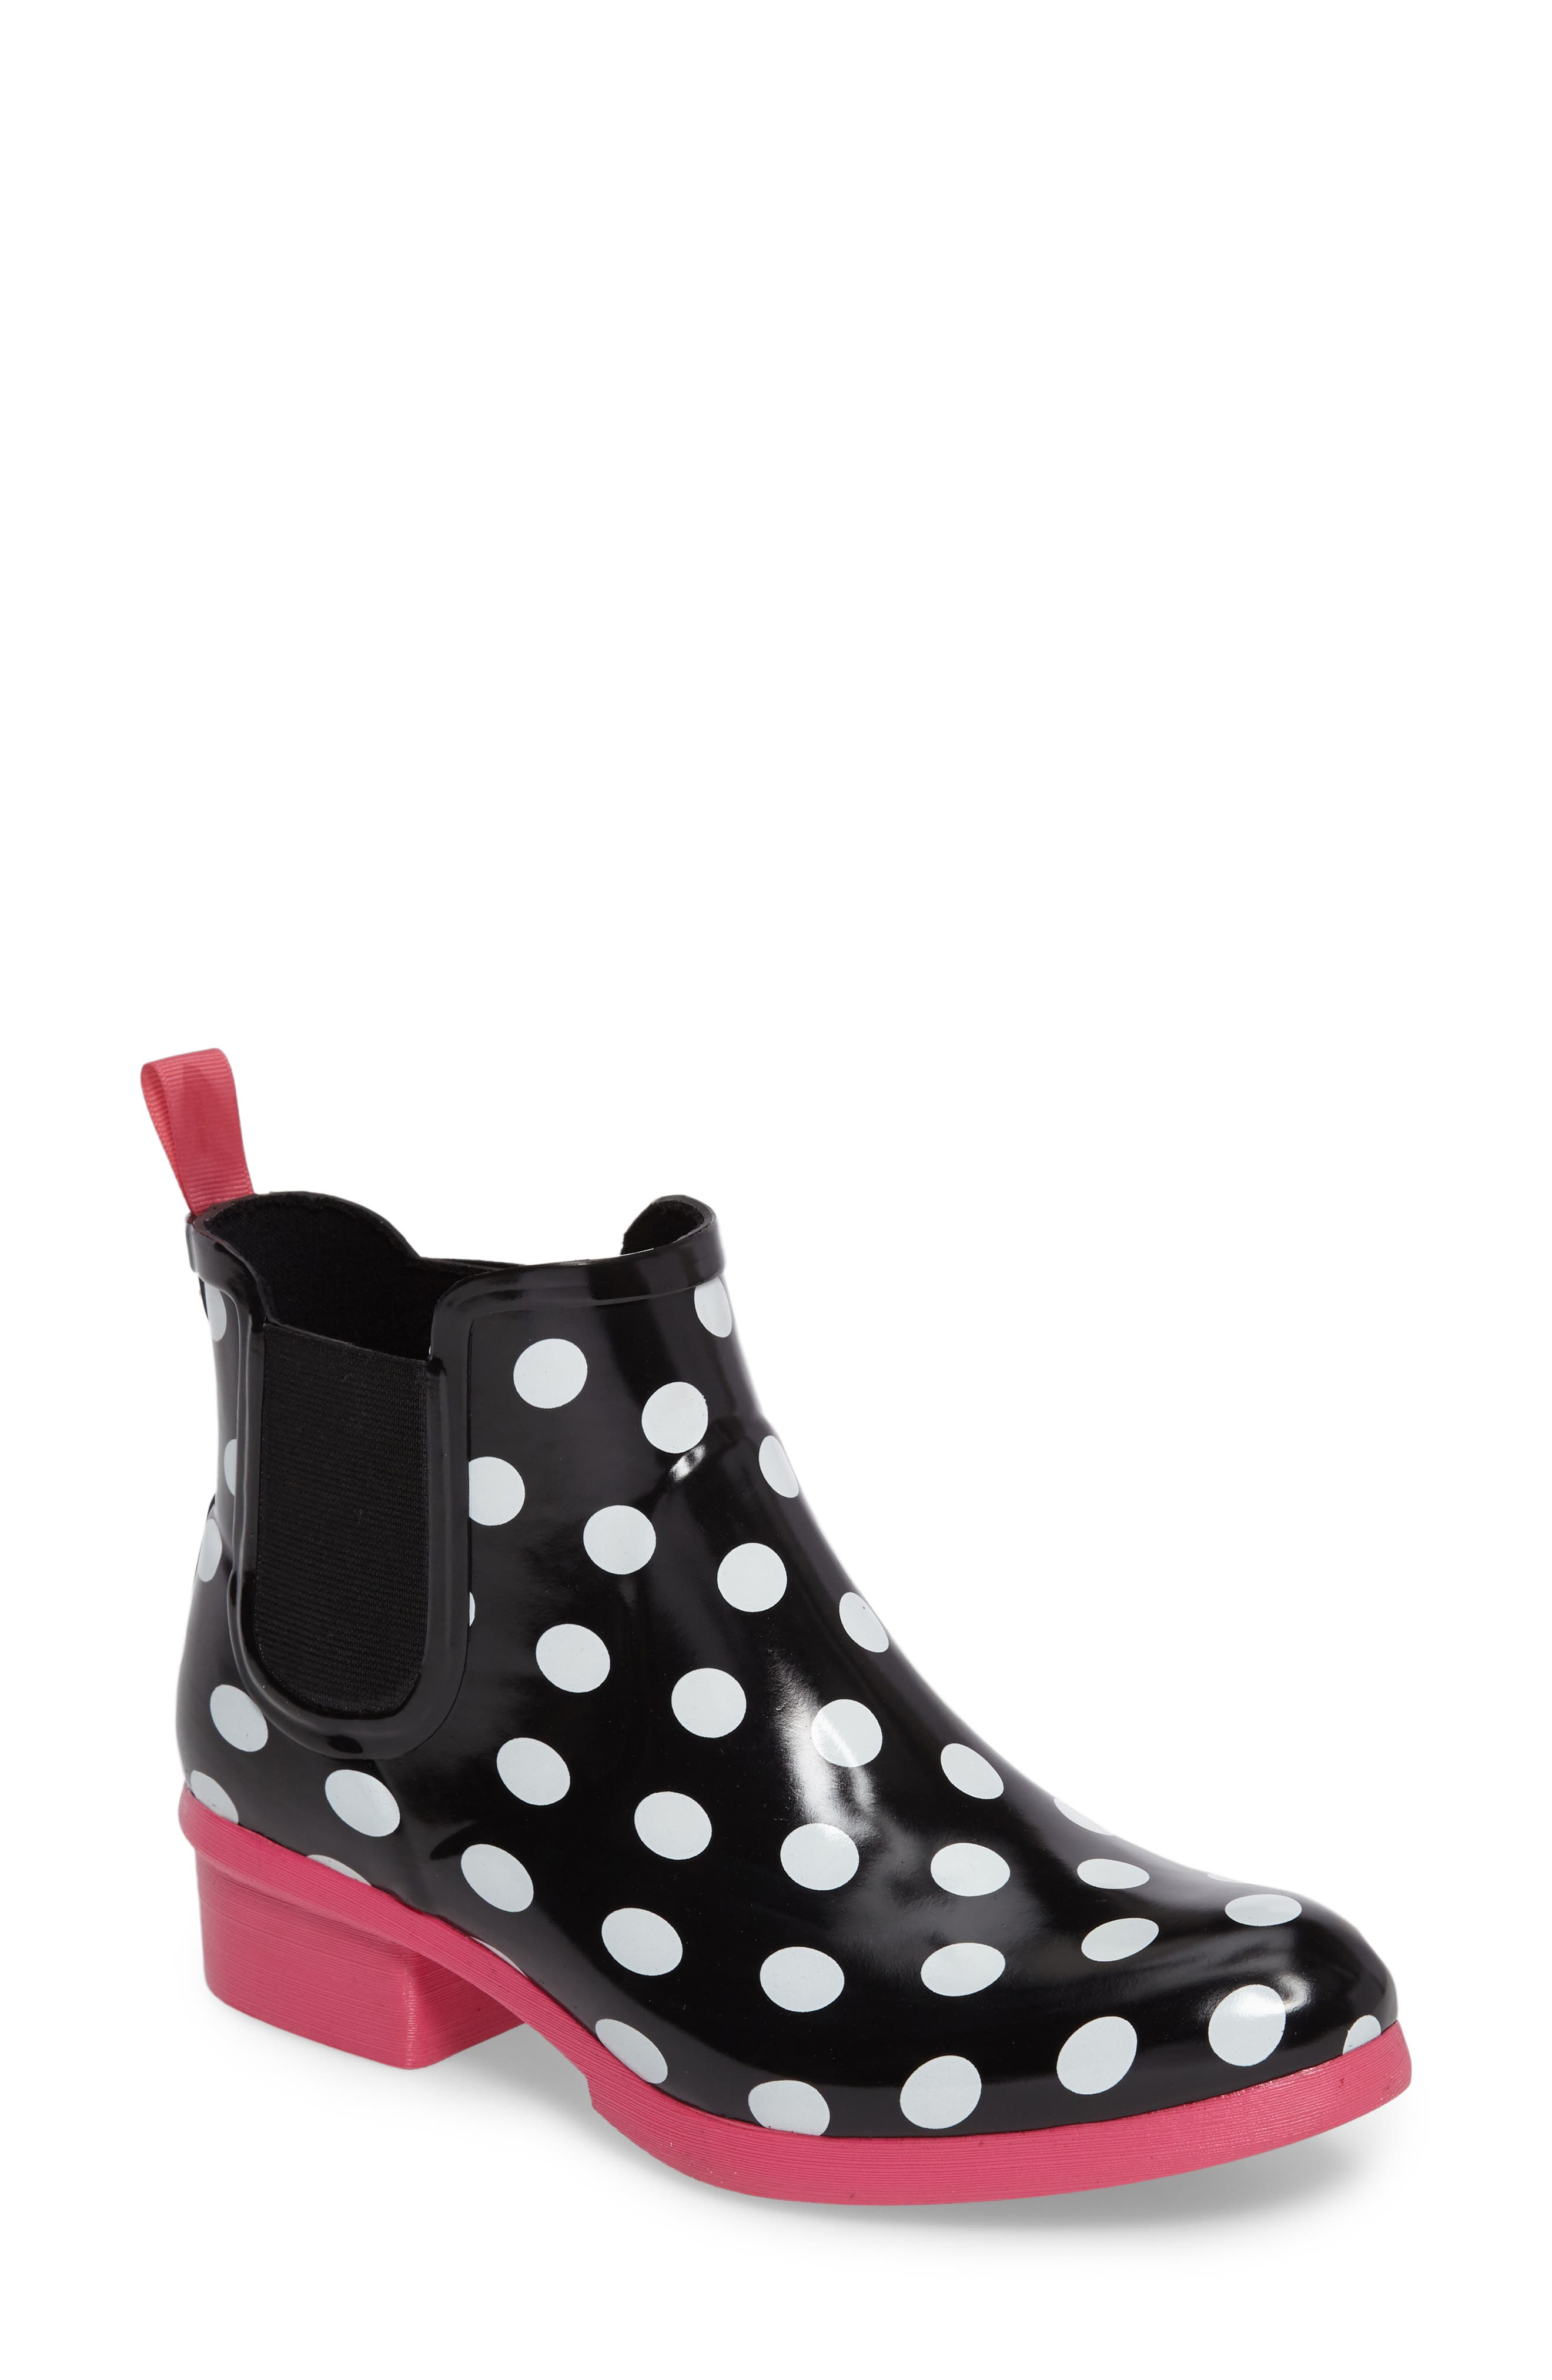 Alternate Image 1 Selected - kate spade new york trudy chelsea rain bootie (Women)